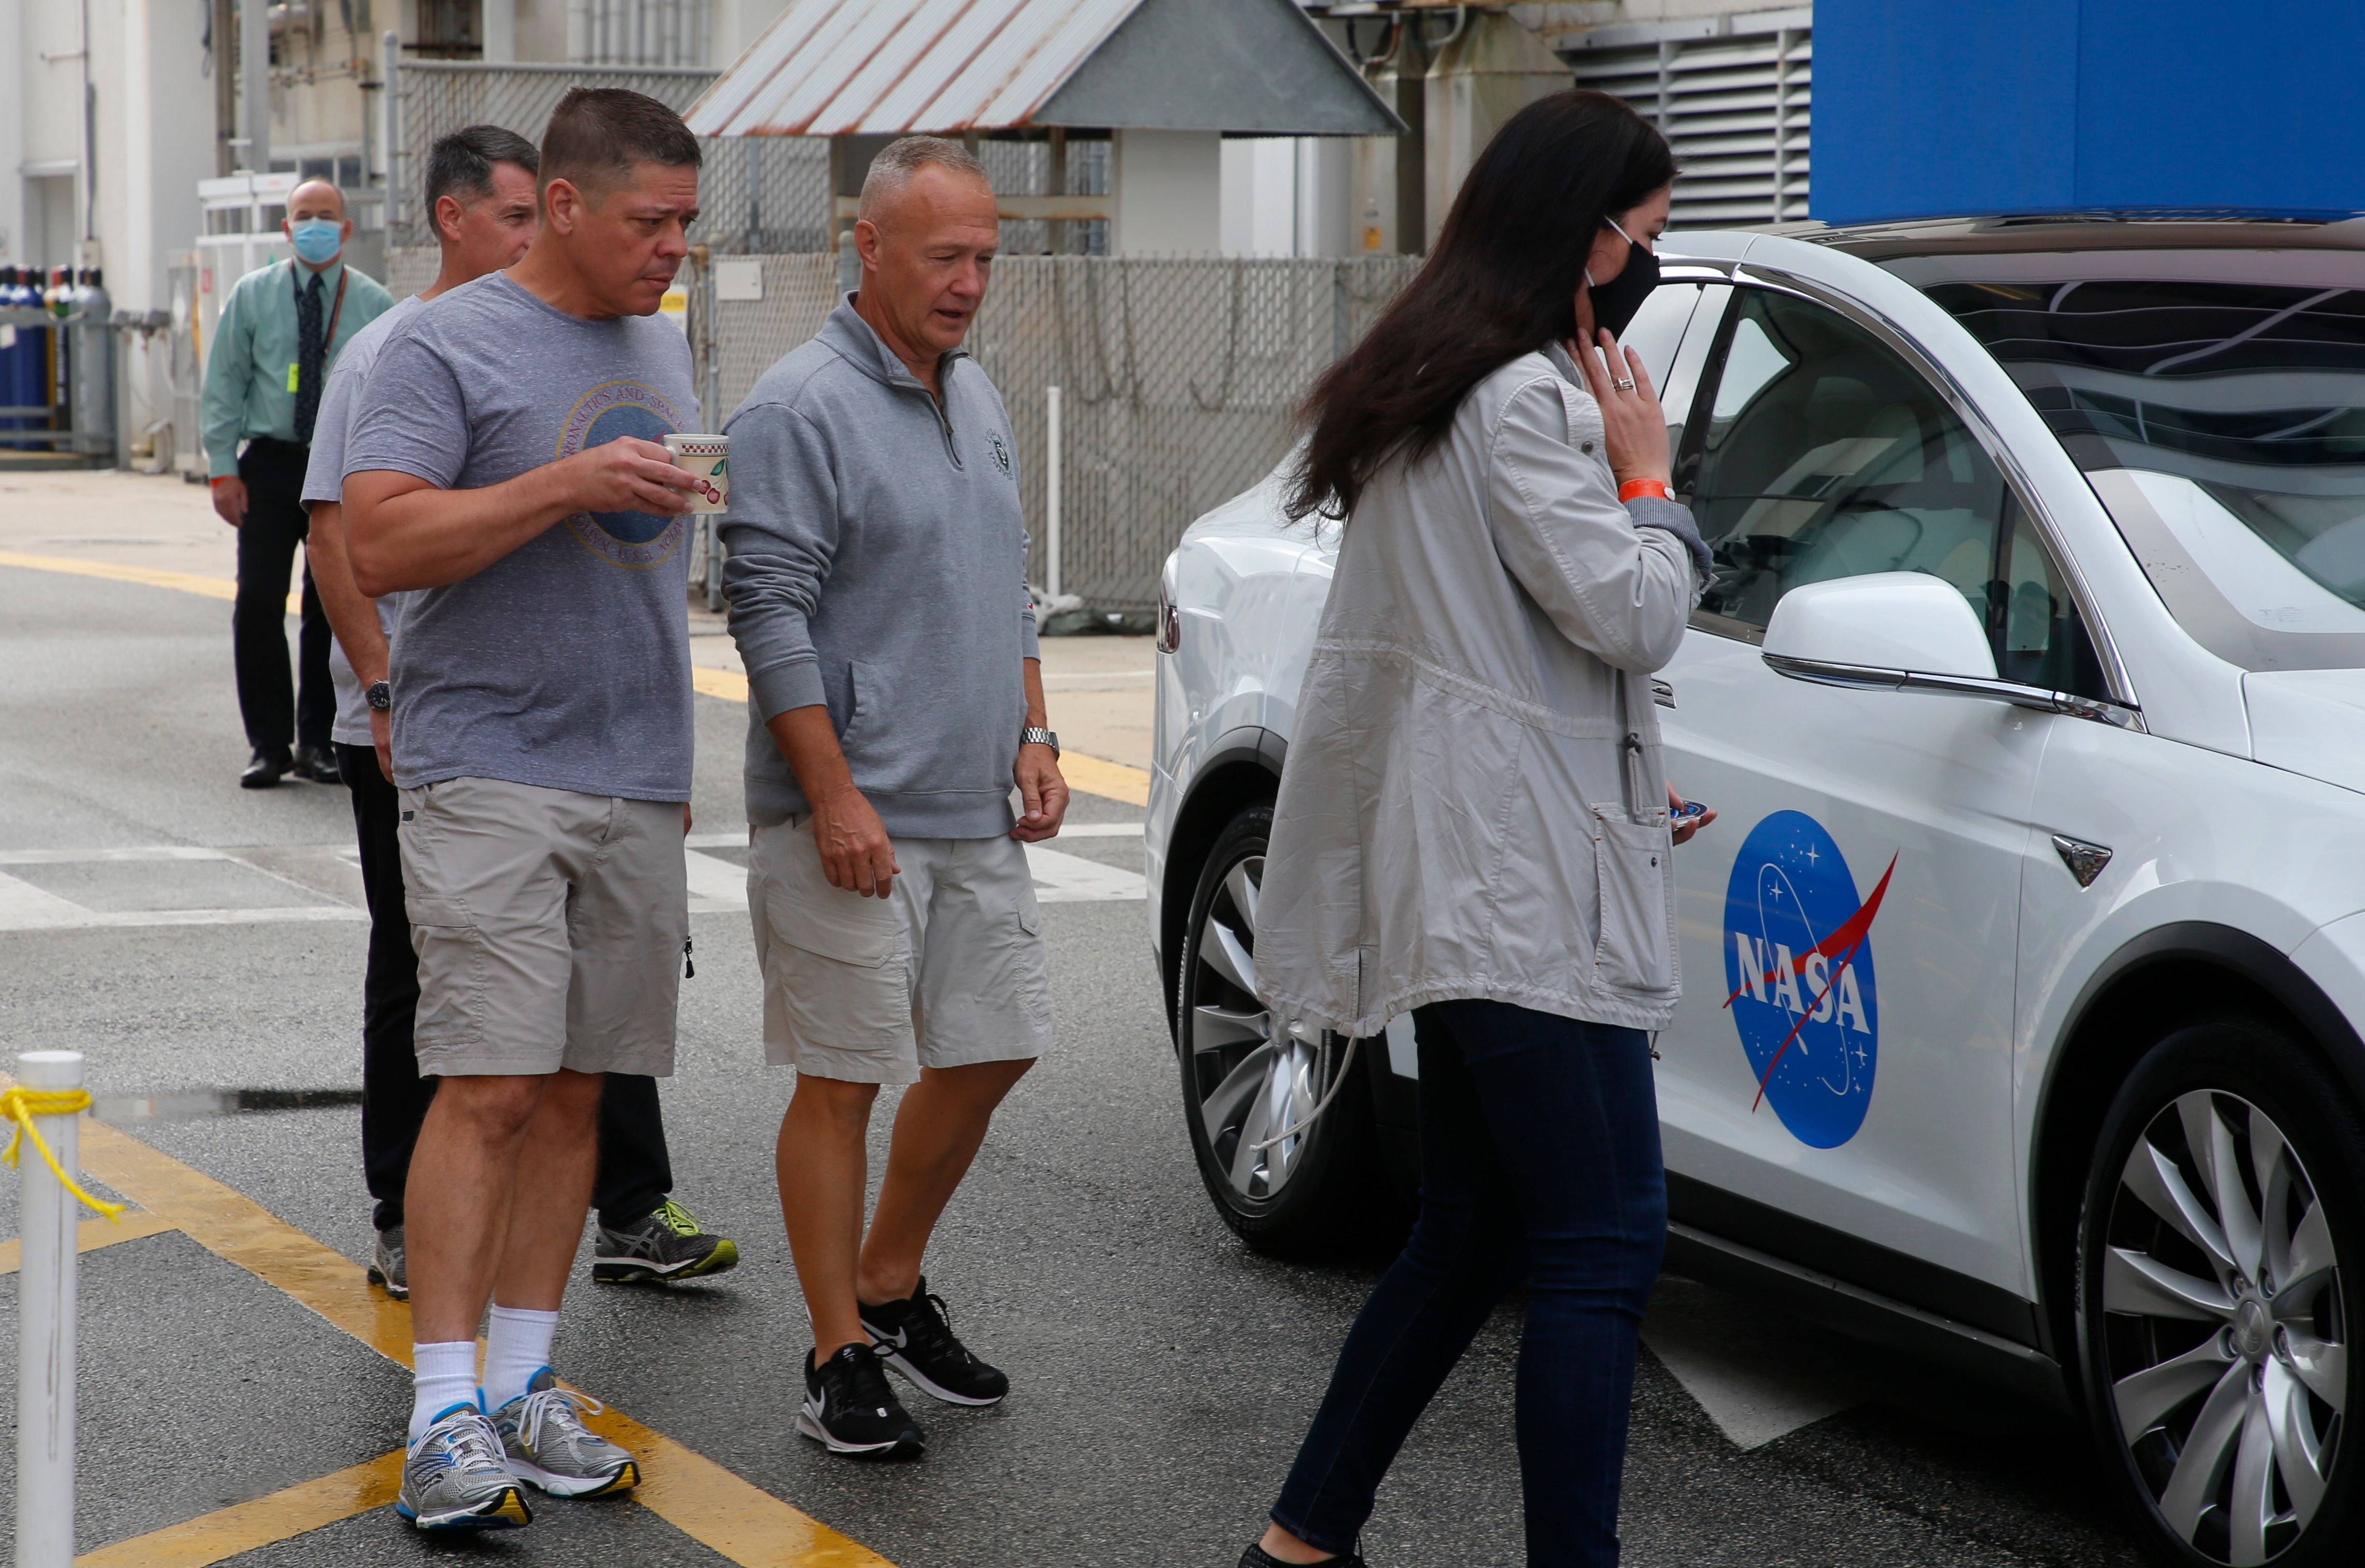 NASA astronauts Douglas Hurley and Robert Behnken arrive to place decals on their crew car, before their NASA SpaceX Demo-2 mission to the International Space Station. (REUTERS)